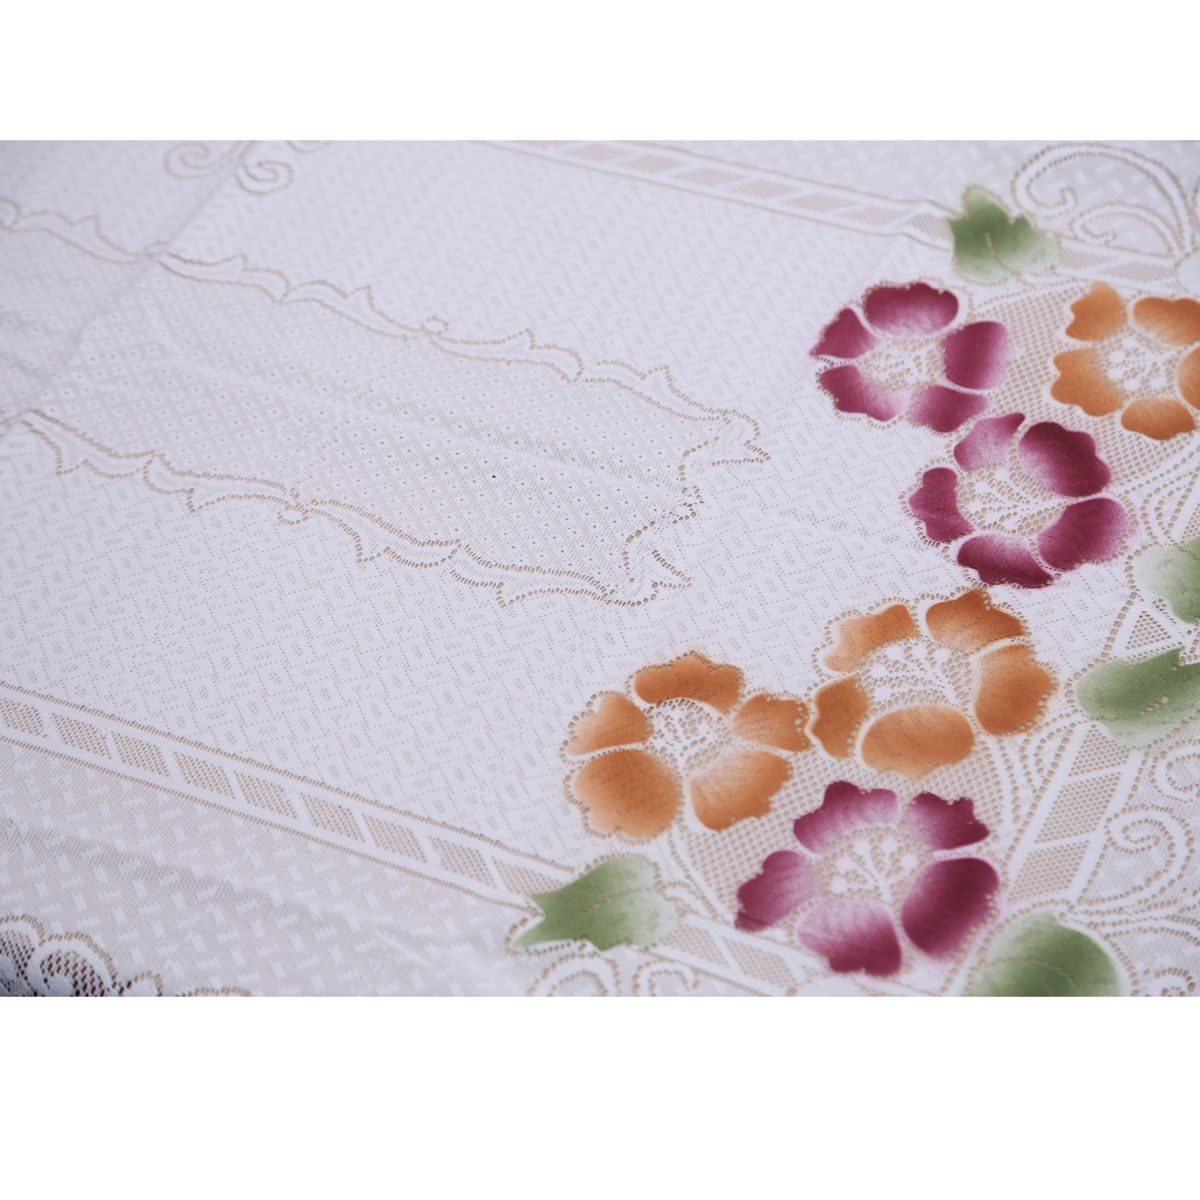 Kuber Industries™ Exclusive Dining Table Cover White Floral Design in Cloth Net 60*90 Inches (Dora Pattern)